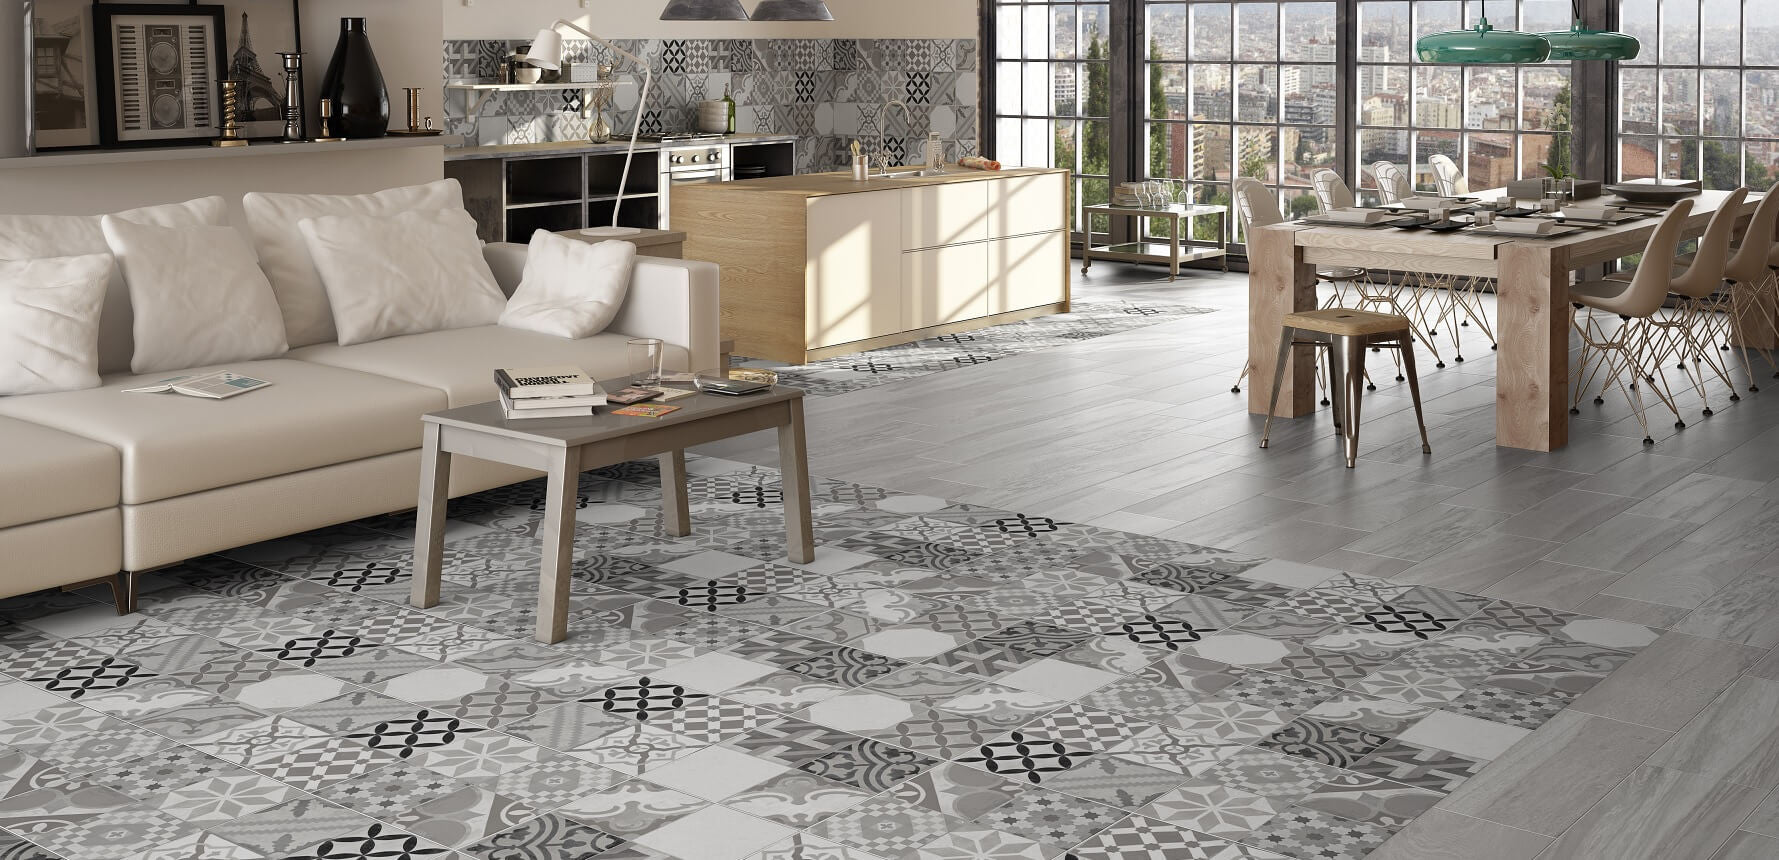 floors floor tile pater large block gallery construction gray and nest homes wall designs